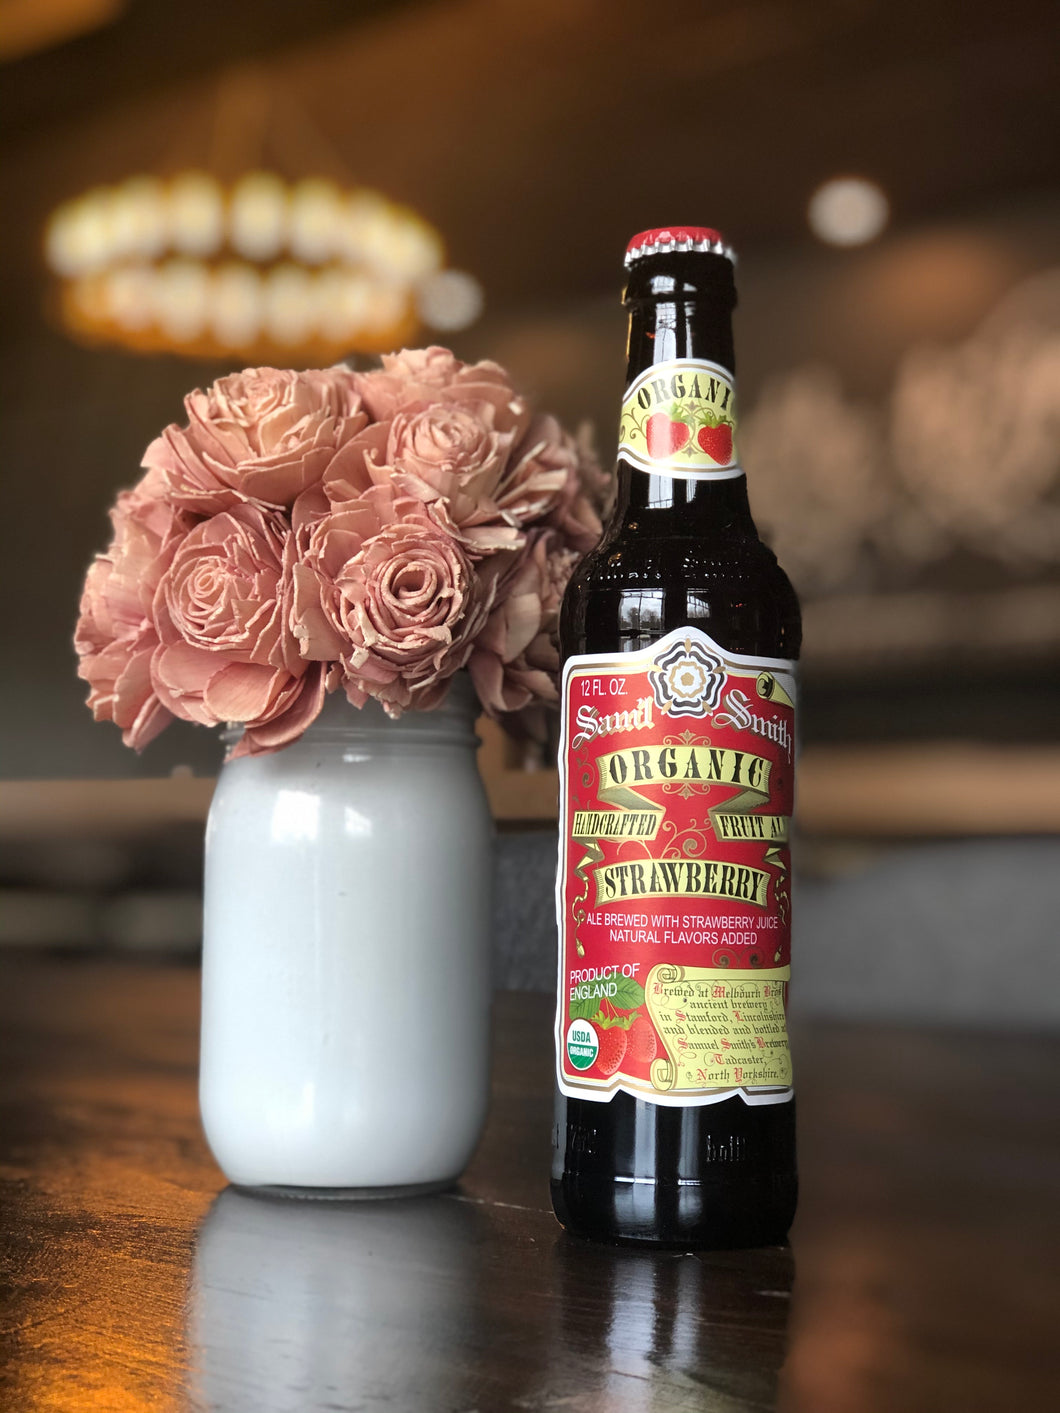 Samuel Smith Organic Strawberry (12oz bottle)